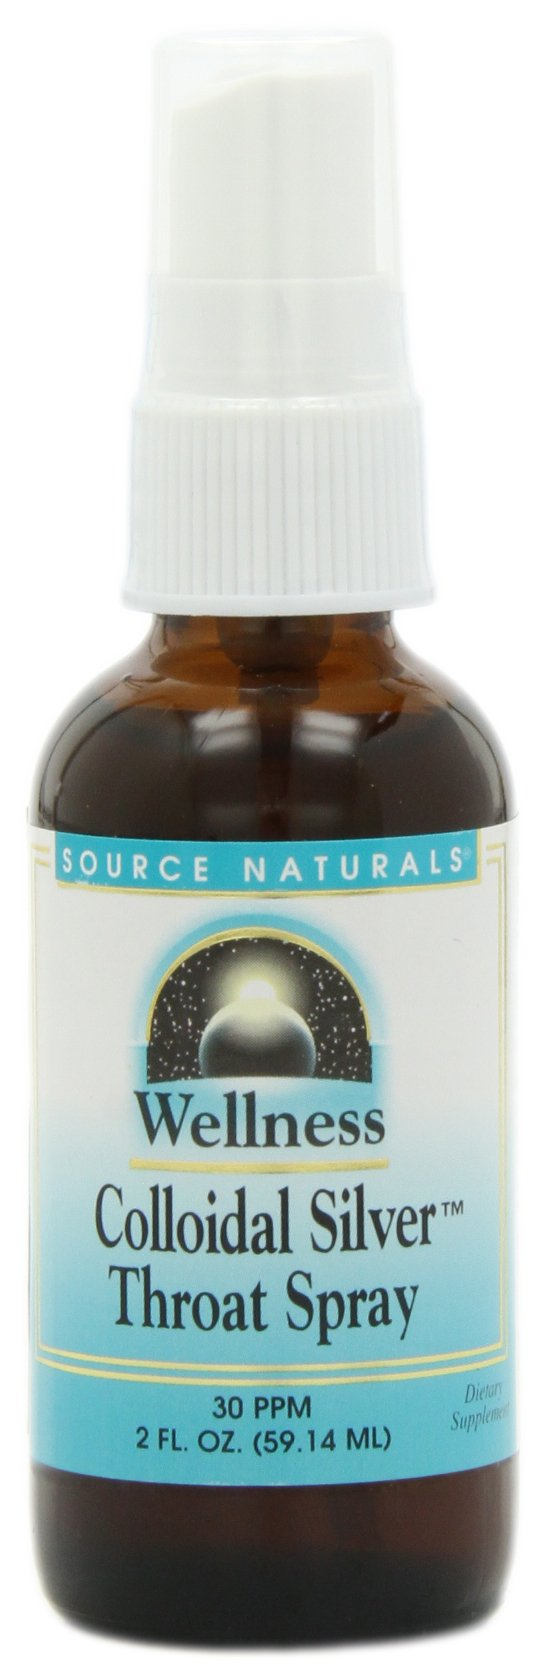 Source Naturals Wellness Colloidal Silver 30 ppm Fine Mist Spray - Pure, Premium Silver Mineral Supplement - 2 oz